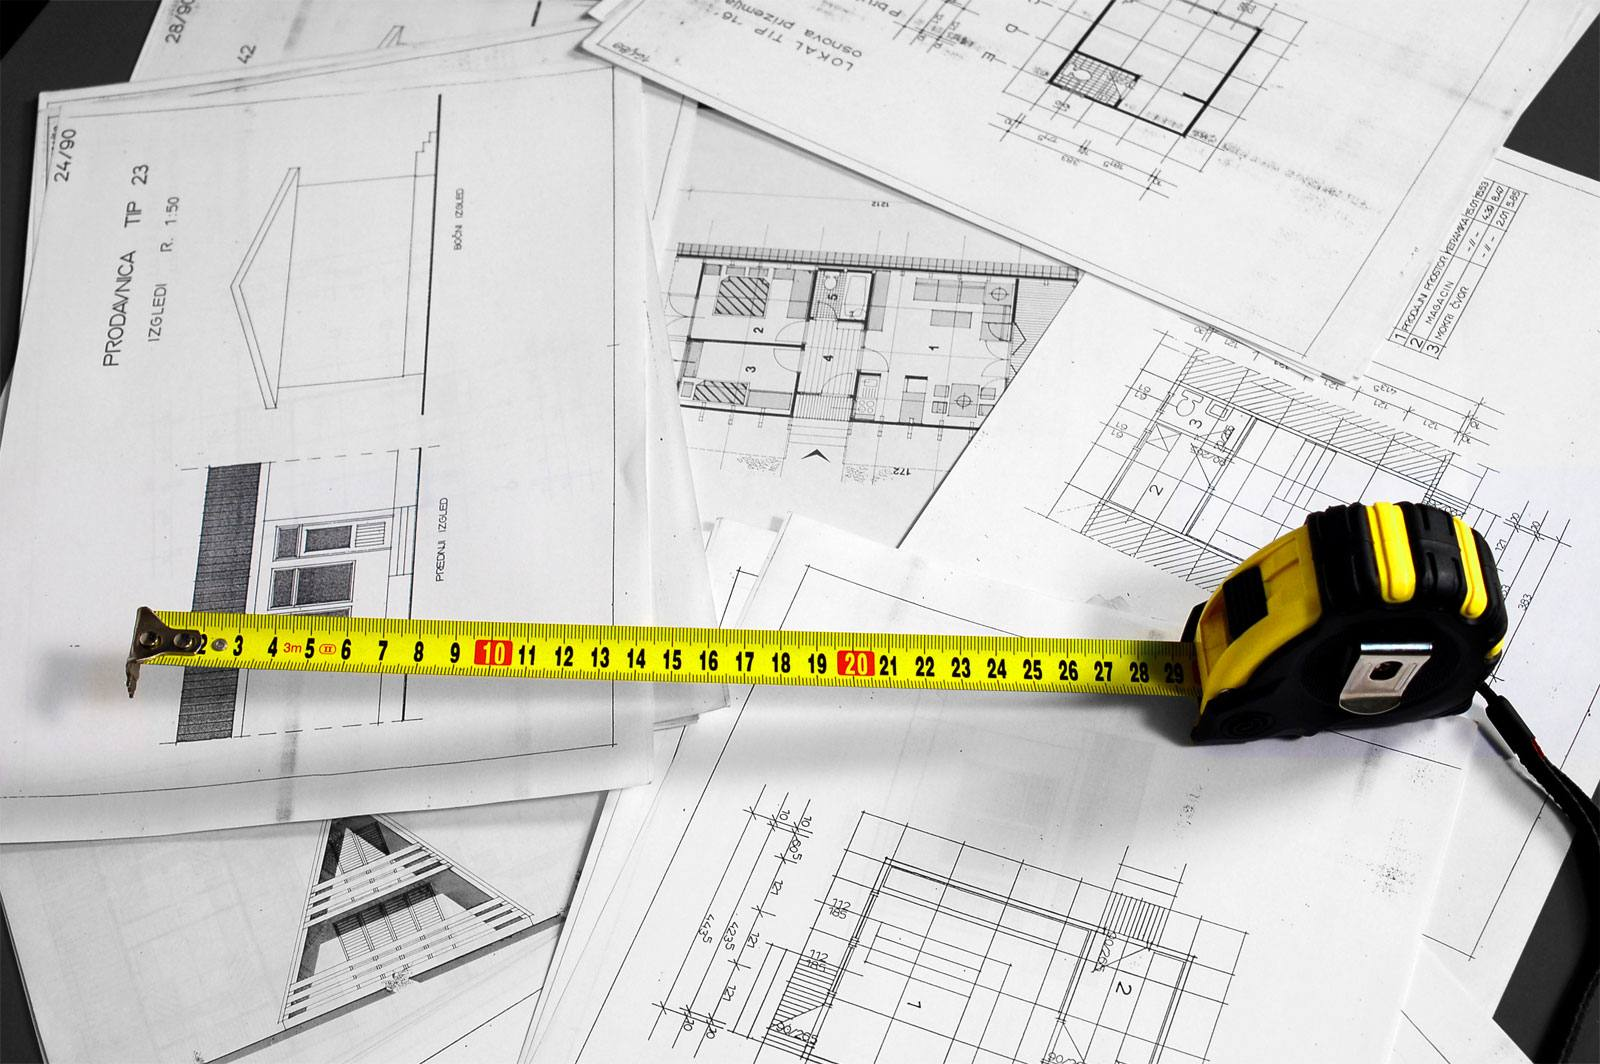 7 Things Your Building Surveyor Should Check